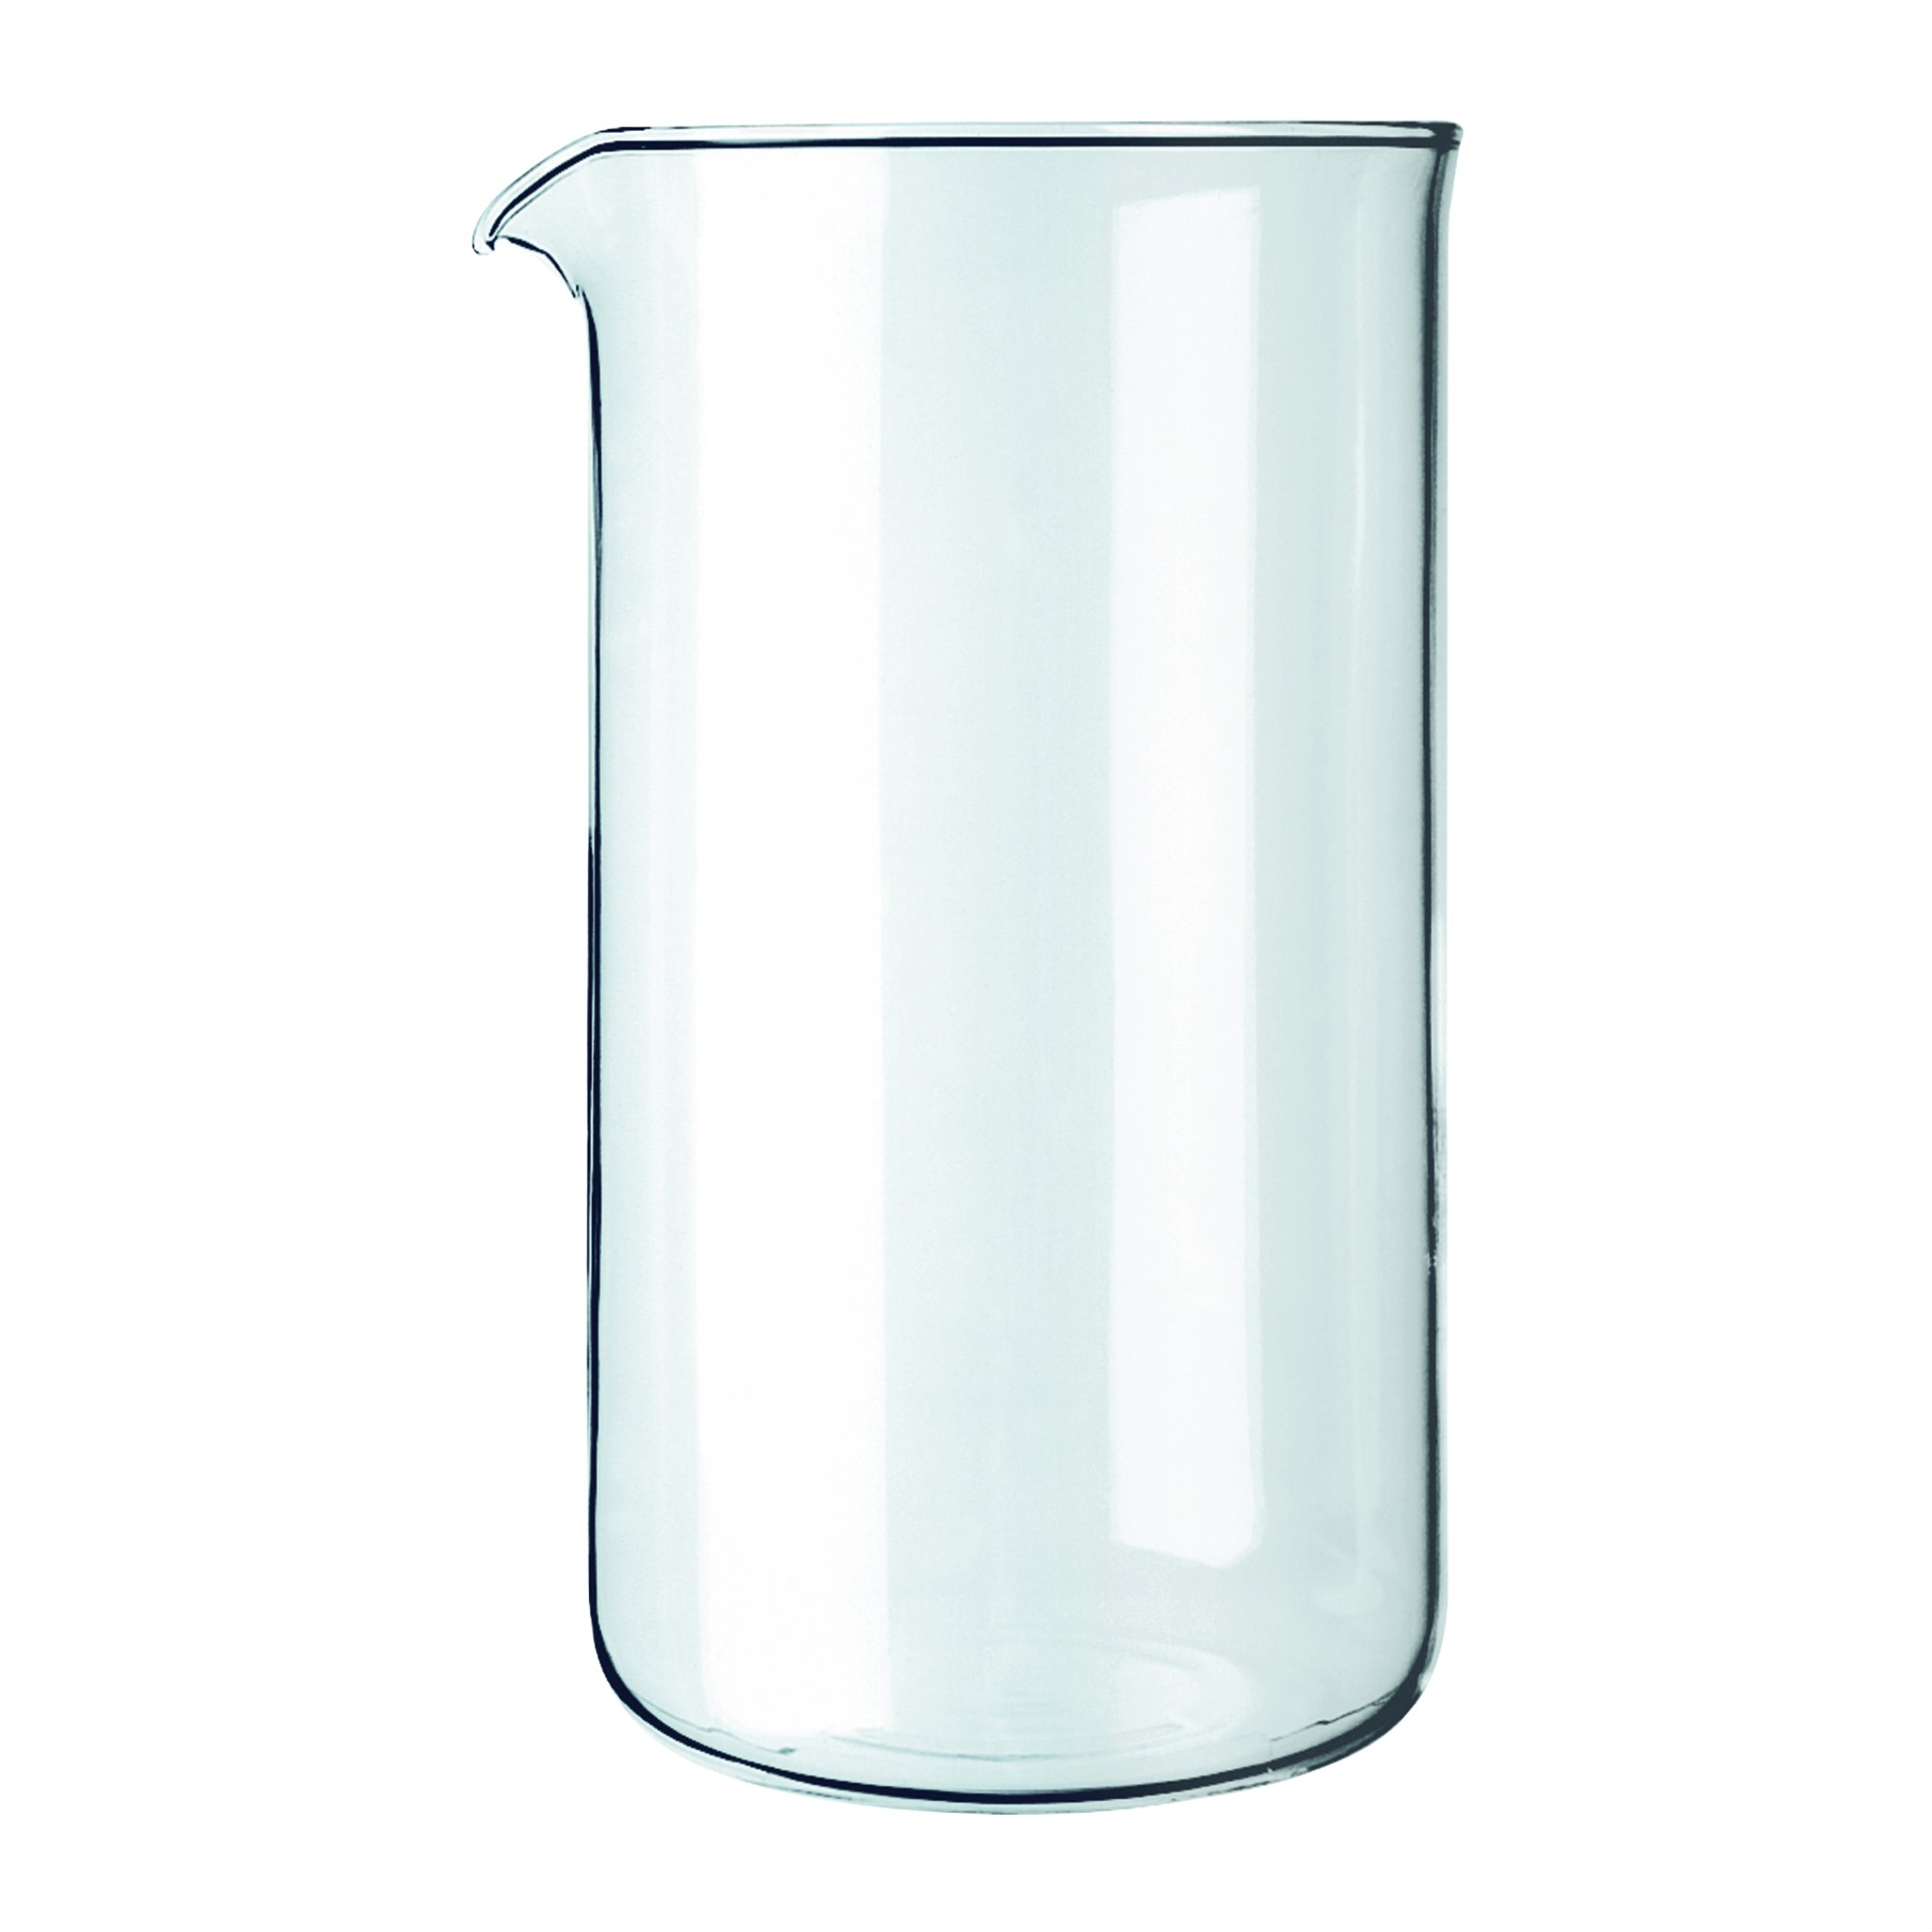 Bodum Spare Beaker, Glass, 34 Ounce, 1 Liter by Bodum